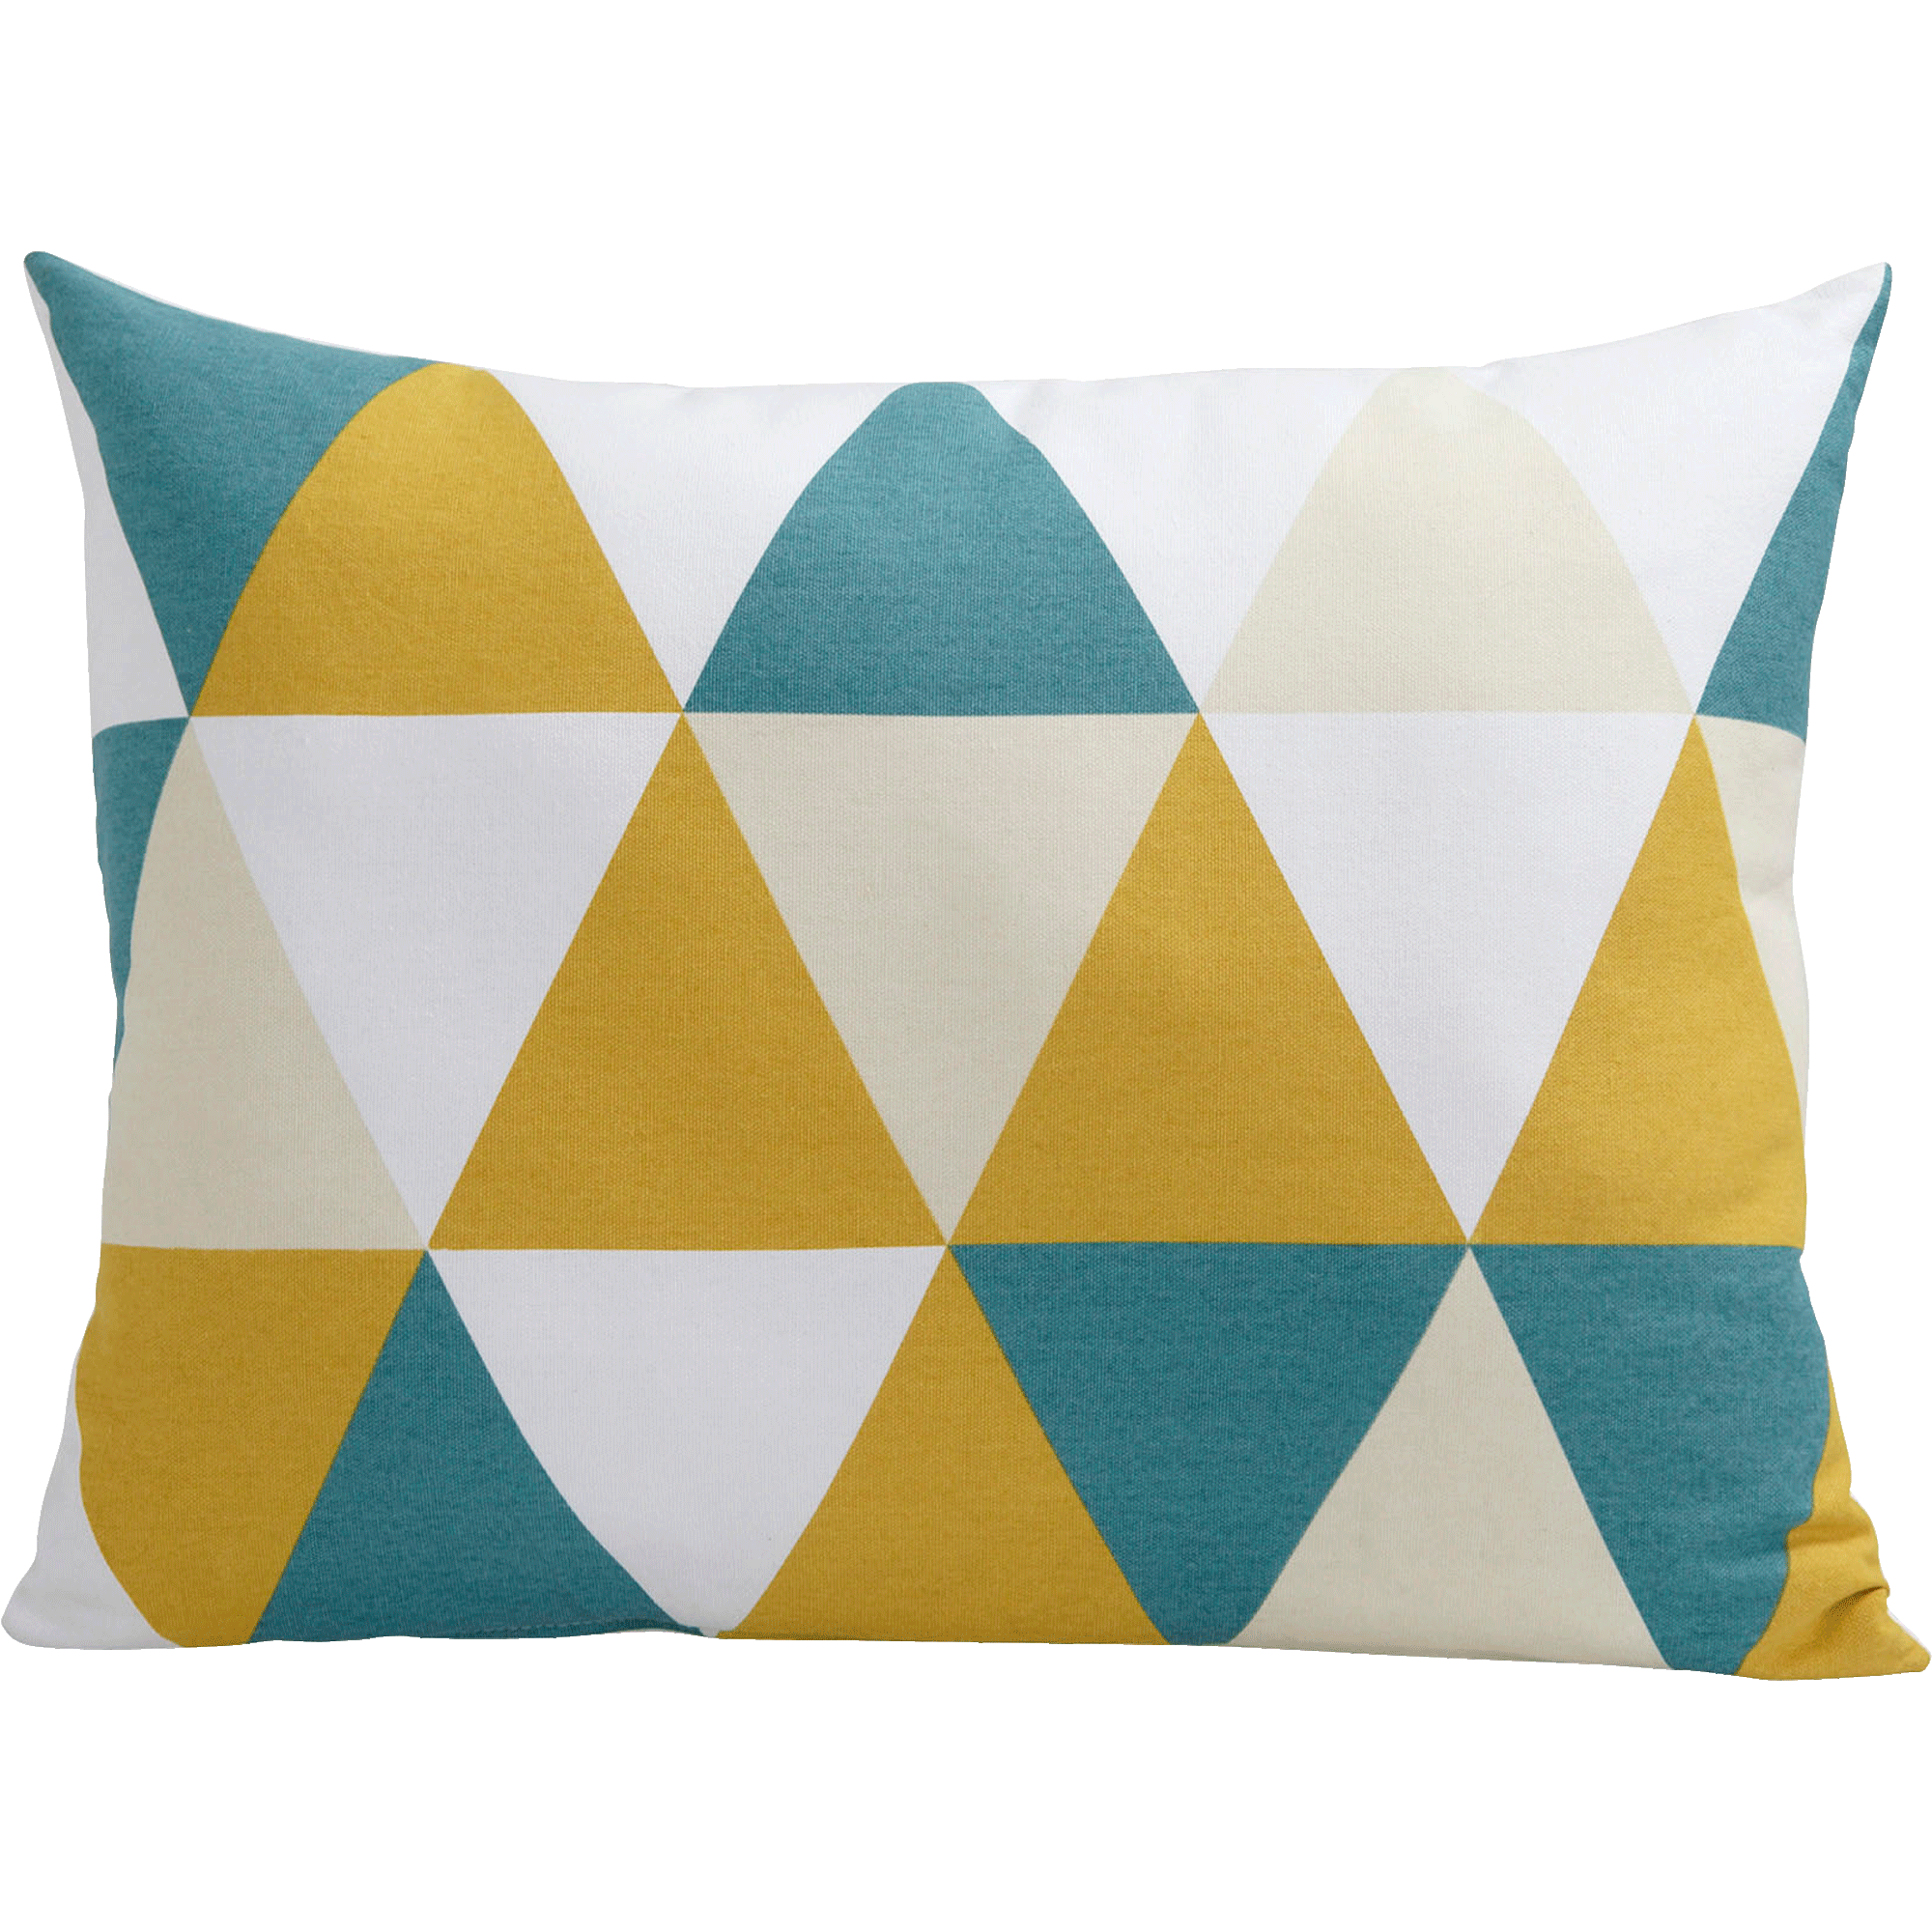 Coussin à motifs triangles 45x60cm - TRIANGLES